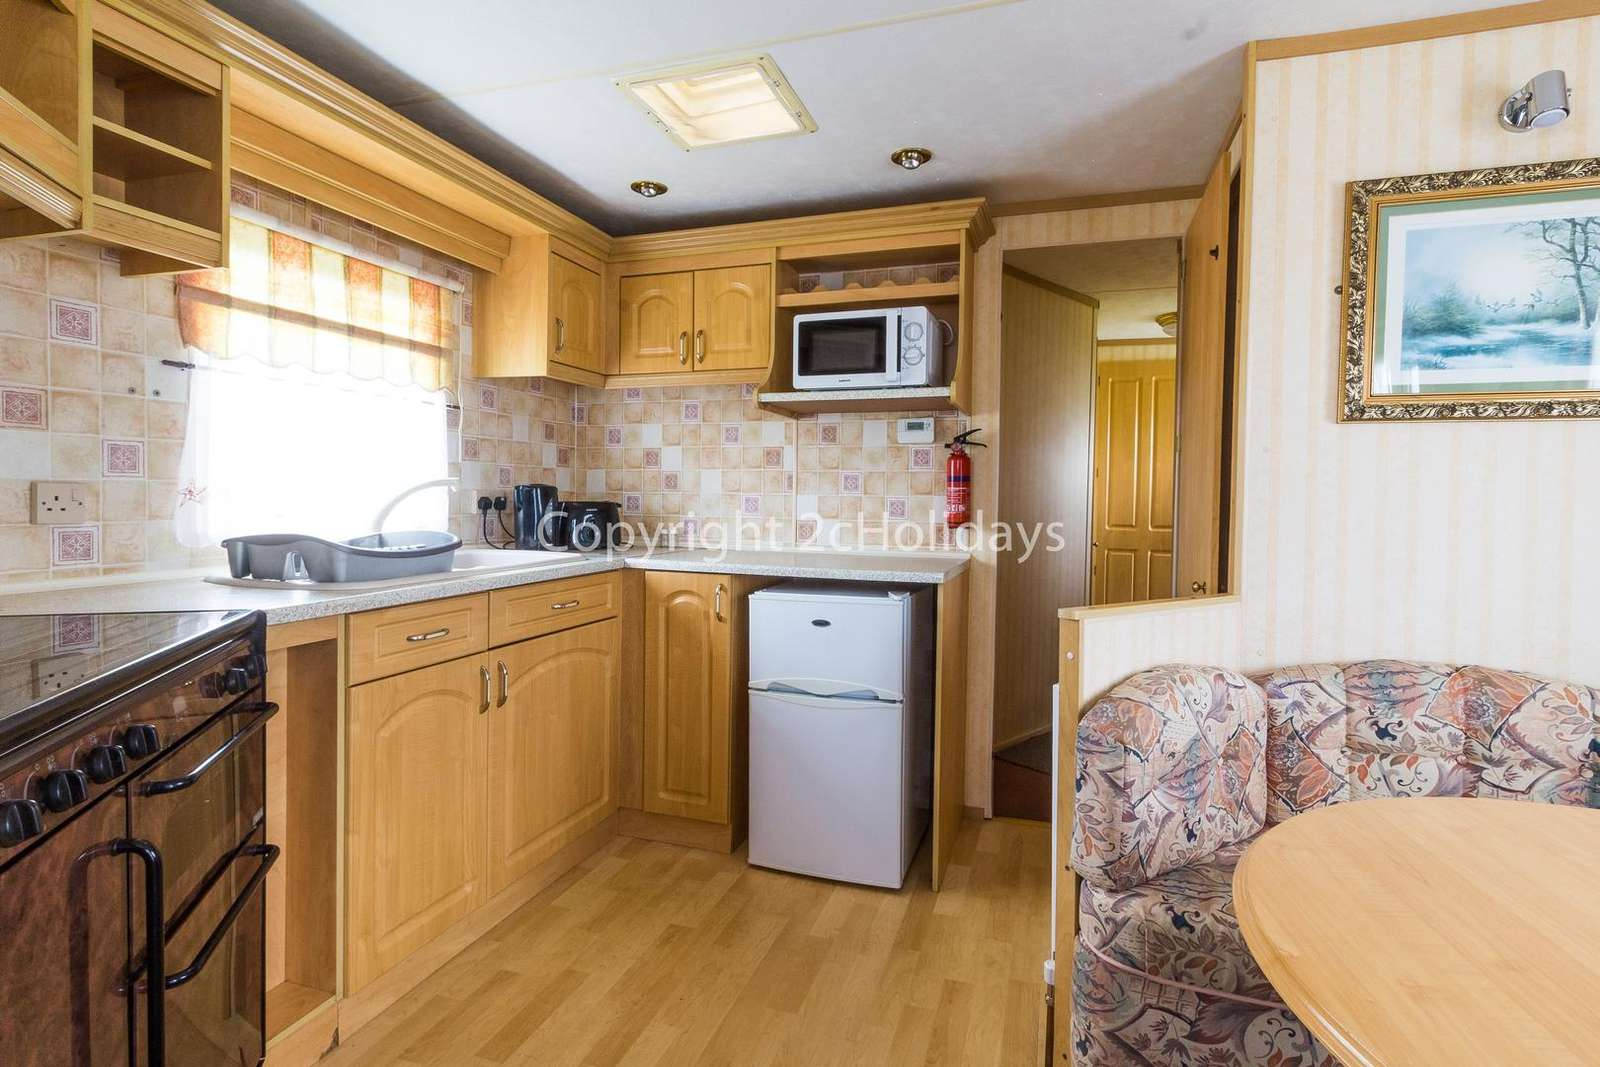 Spacious and open plan kitchen/dining area!